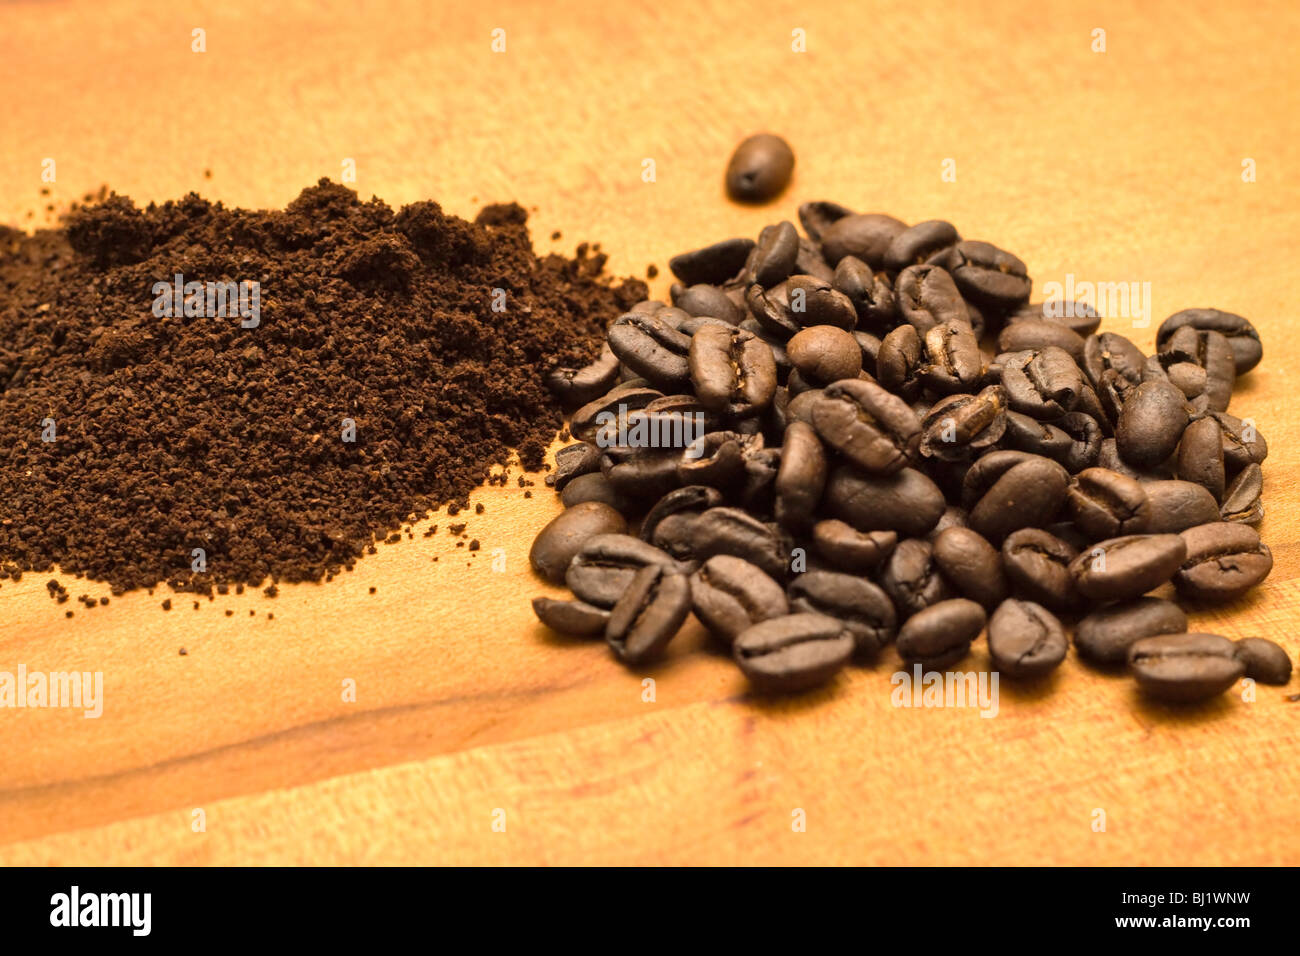 Arabica coffee, whole beans and freshly ground - Stock Image